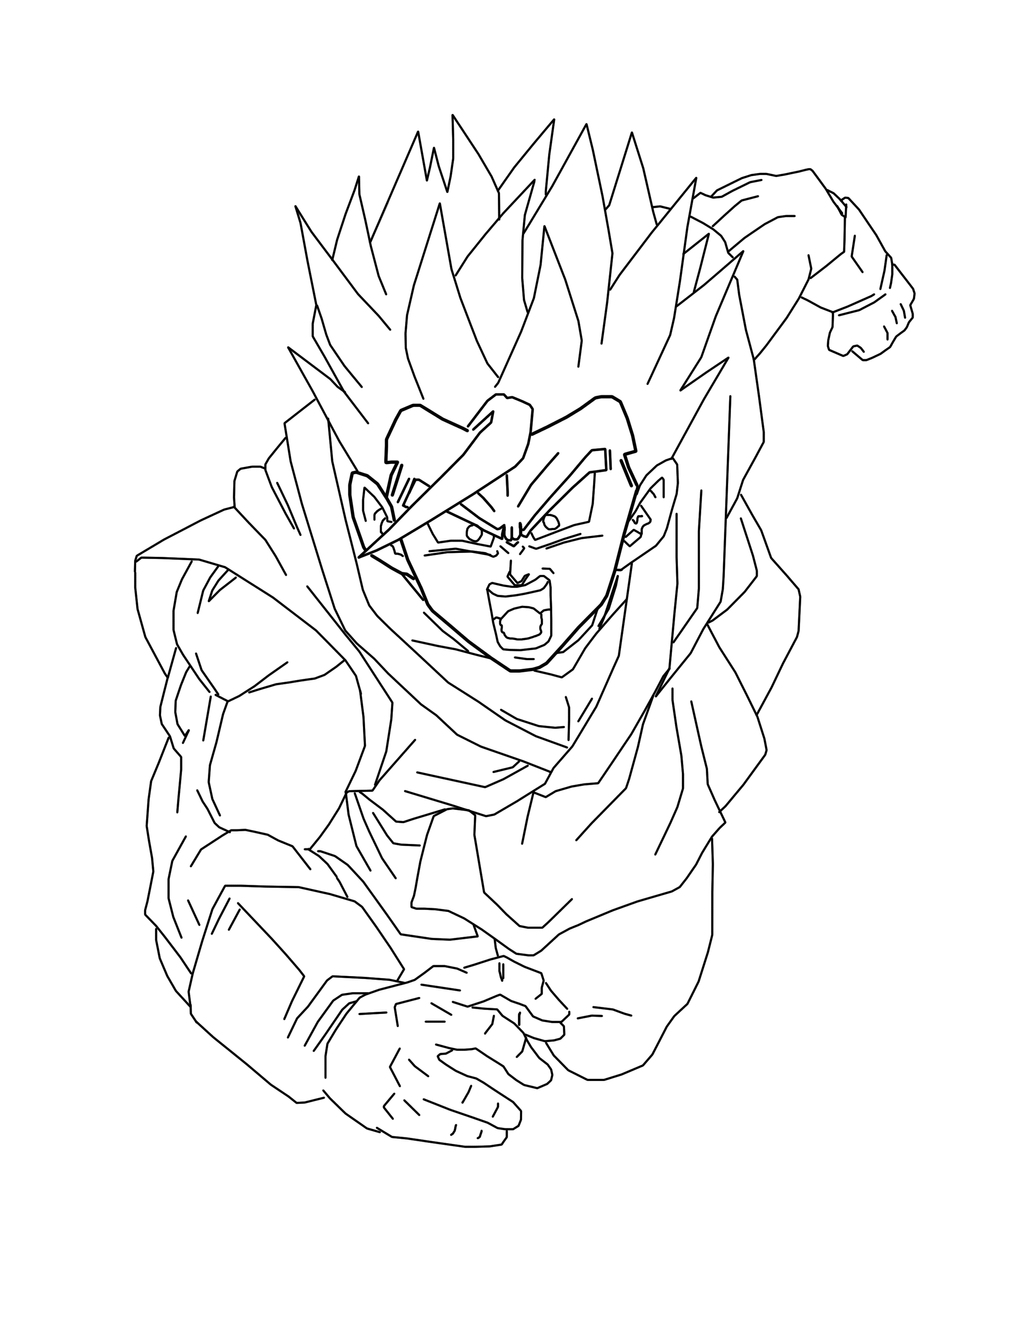 Line Art Render : Gohan ssj render line art by brusselthesaiyan on deviantart